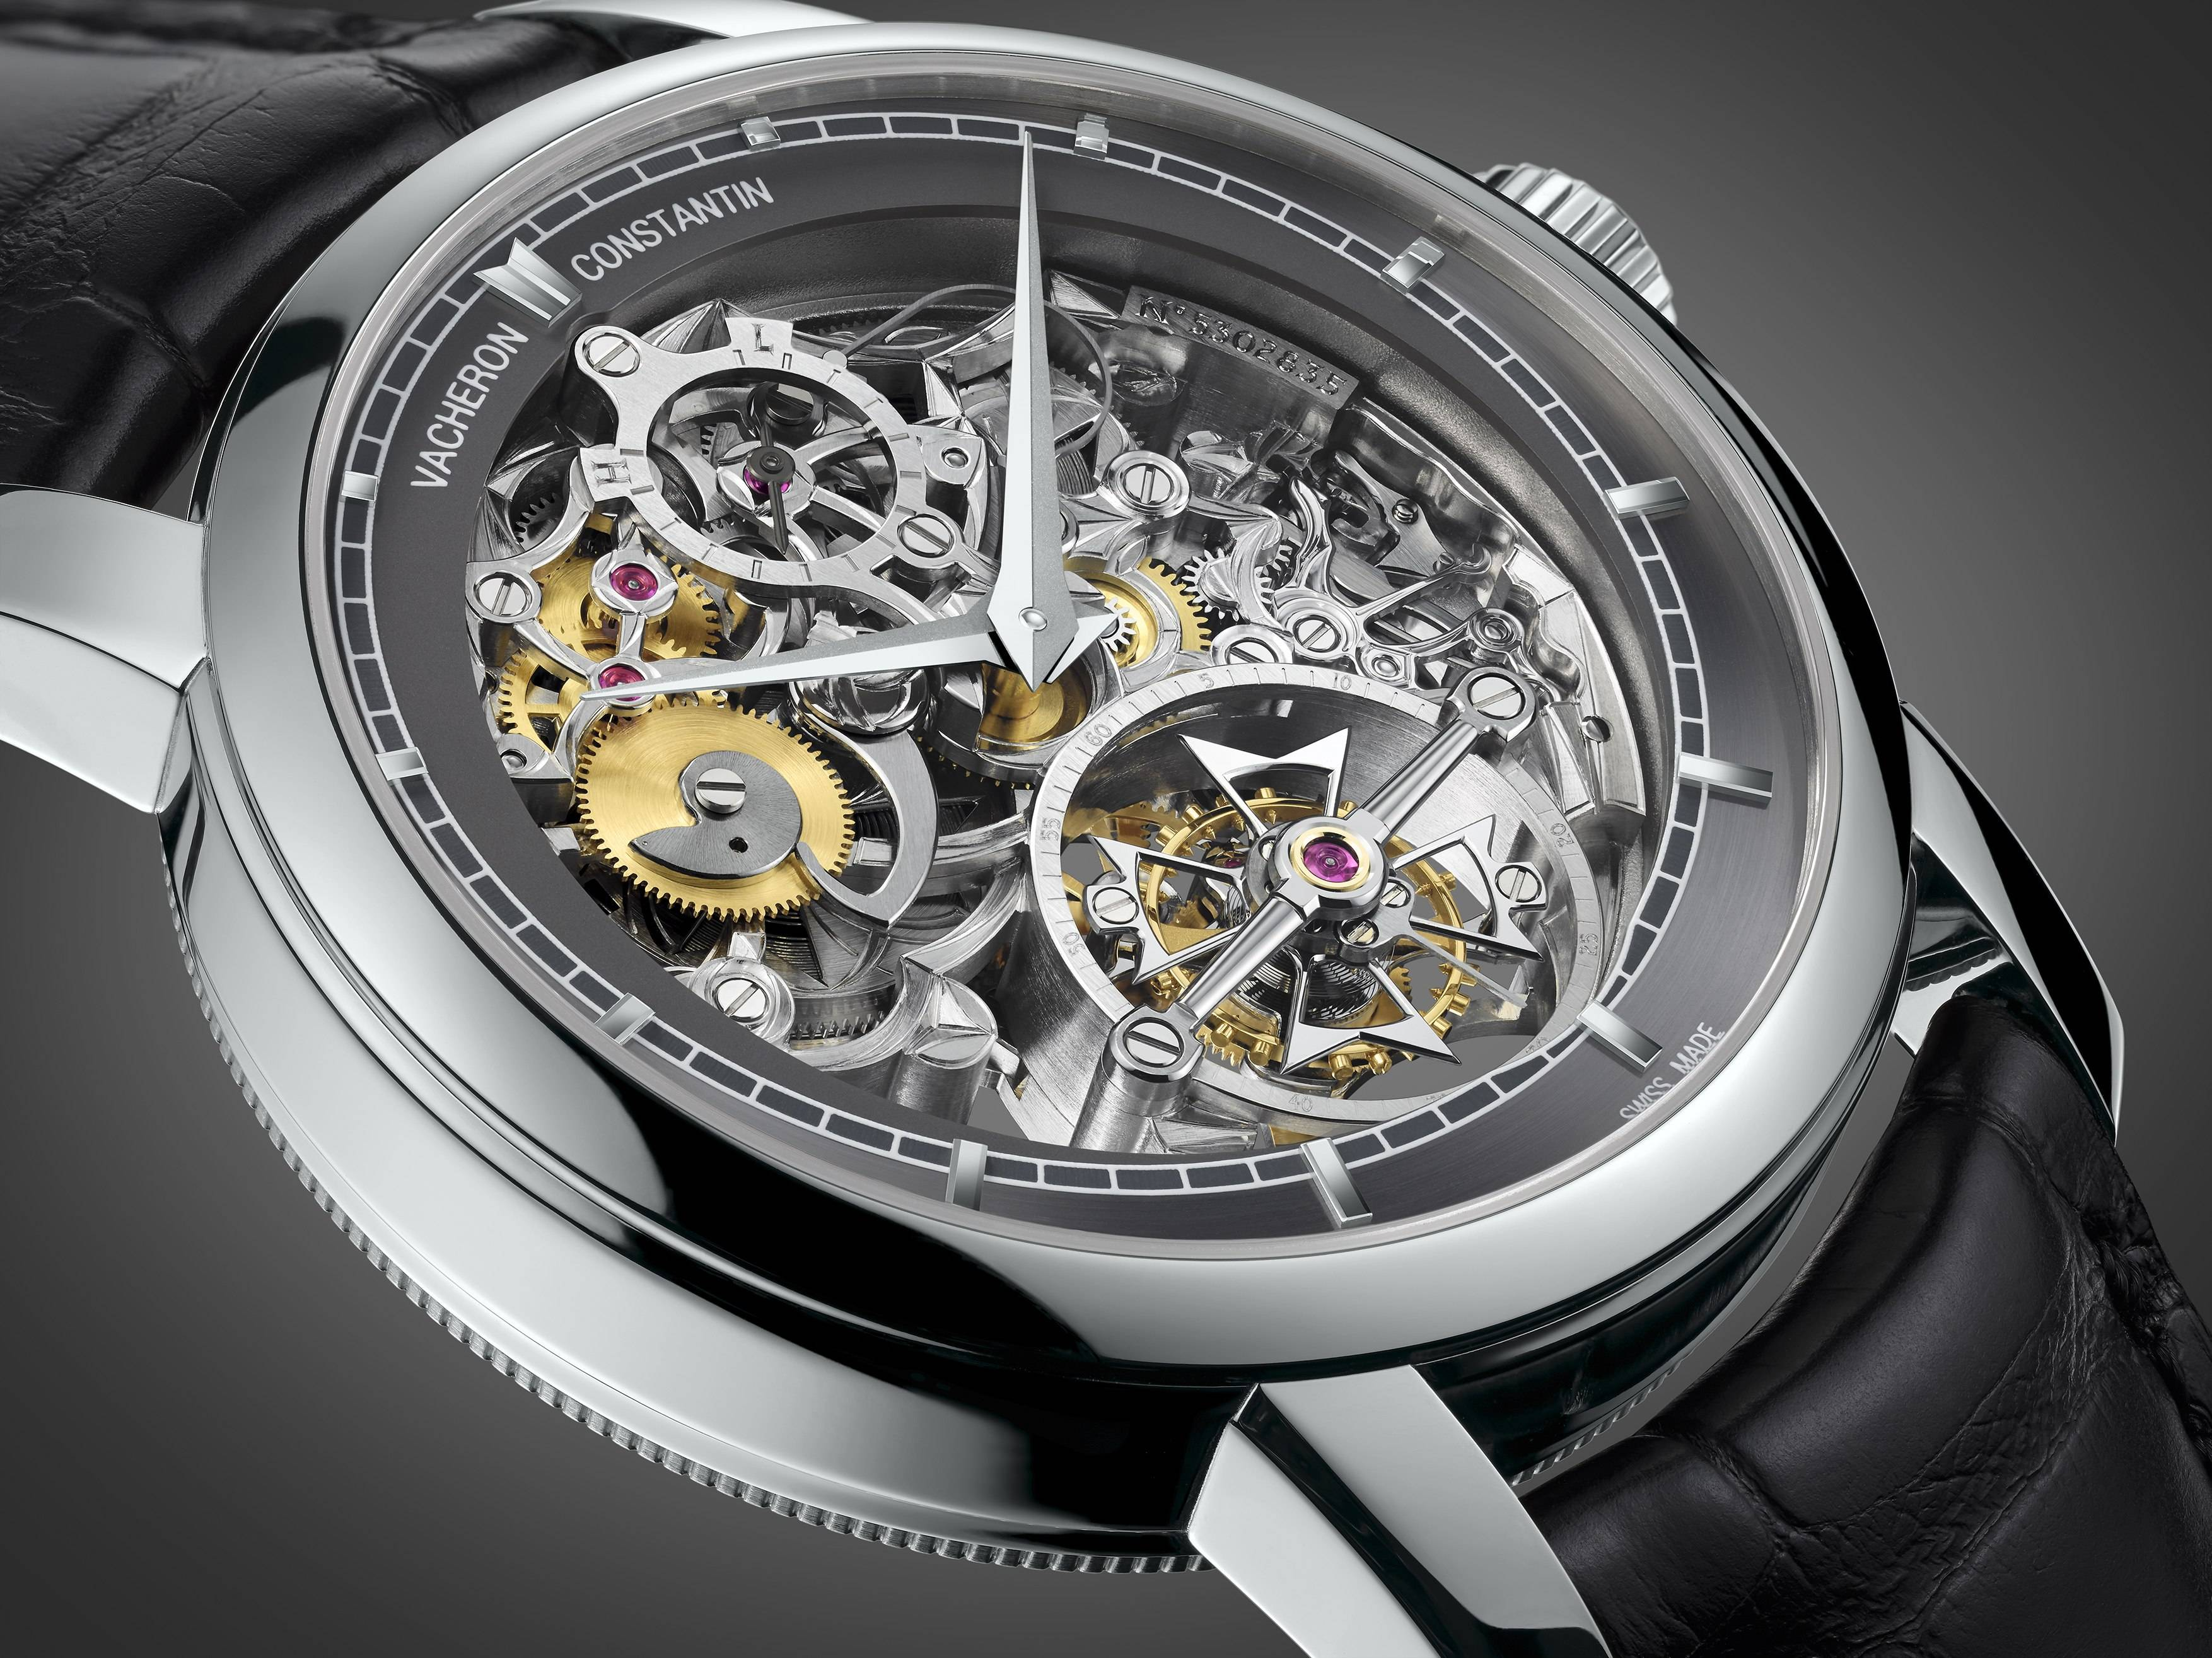 Patrimony Traditionnelle 14-day Tourbillon Openworked.